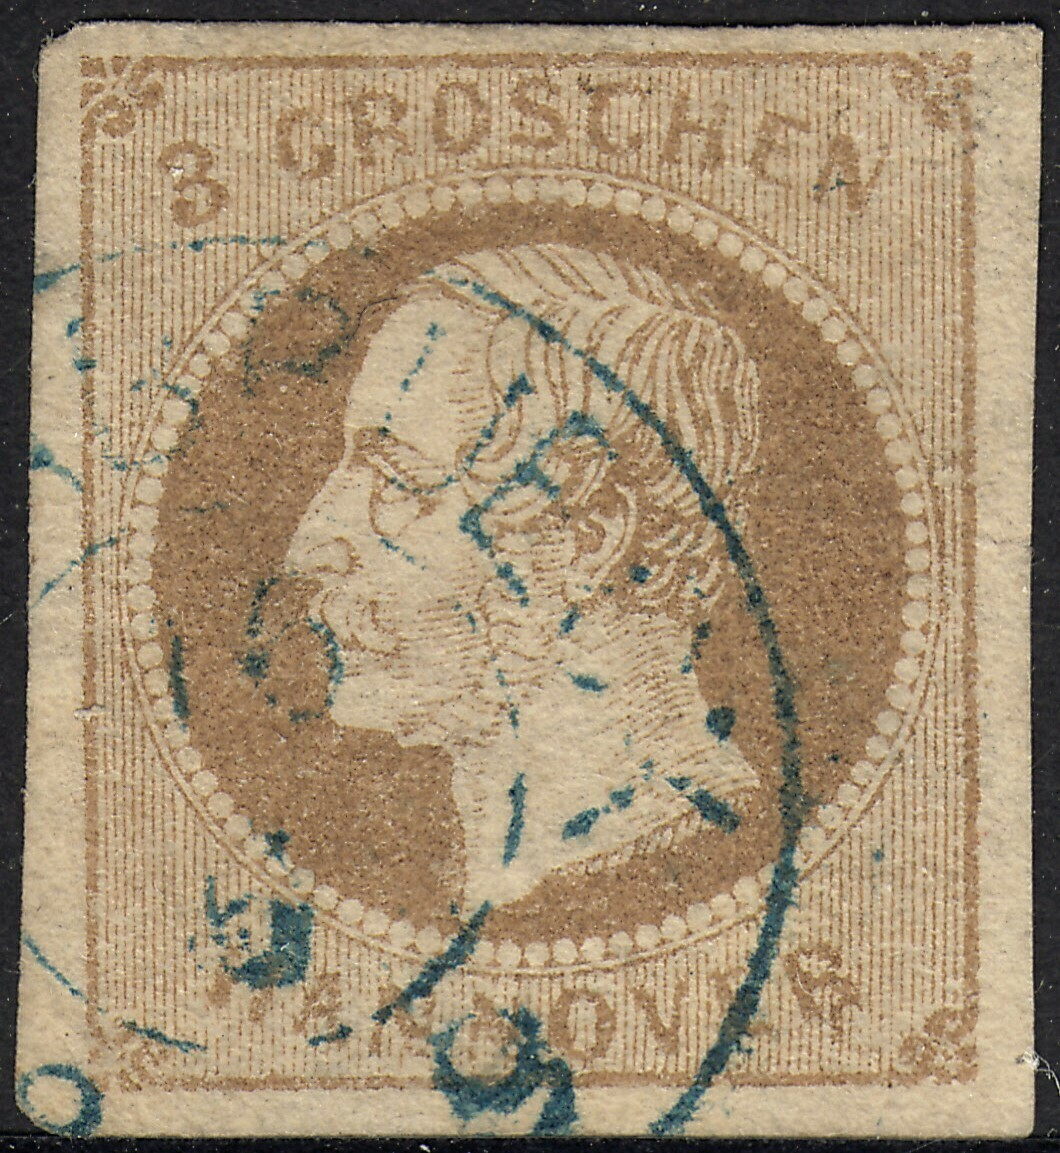 Hanover 1861 3gr Light Brown 4 Large Margins VFU